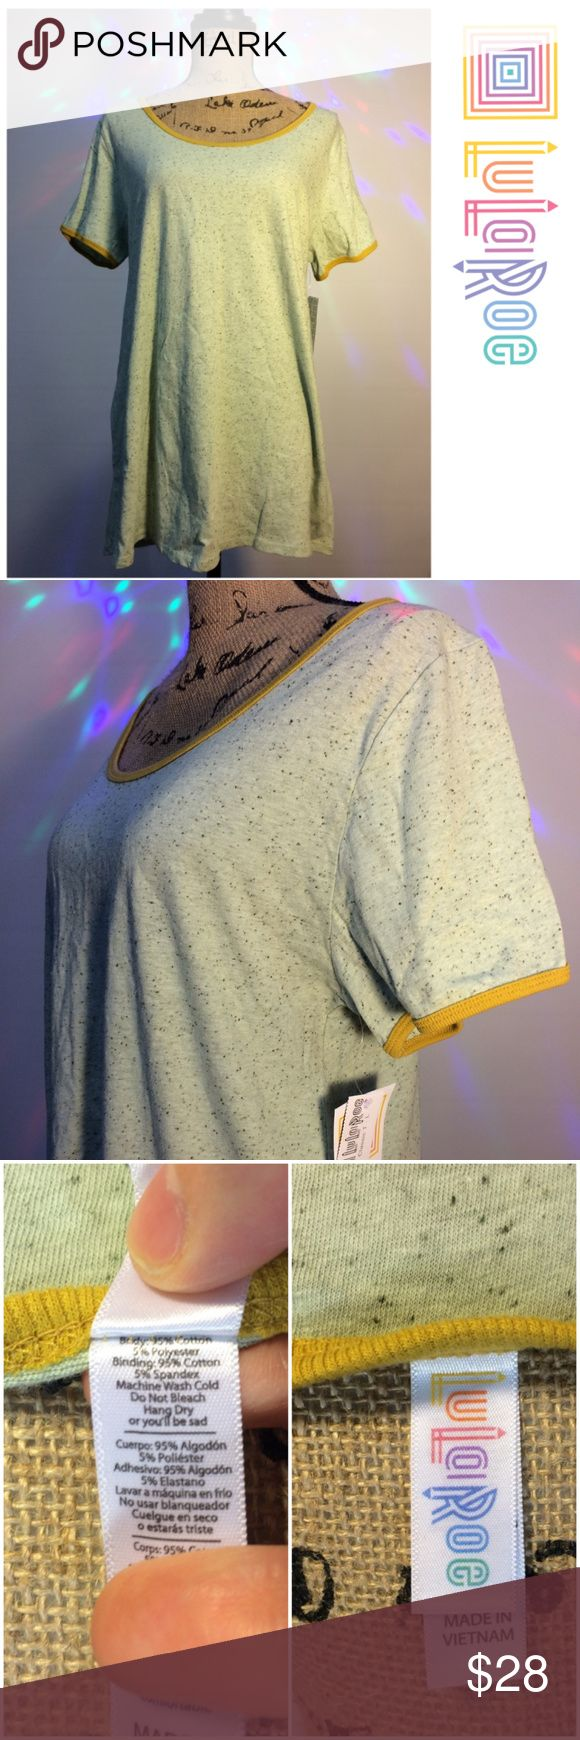 SALE! Brand New LuLaRoe Classic T Tee Lularoe Classic T  Light muted pistachio green speckled heathered with mustard yellow trim  Size Large  New with tags.  Tags: Sage Ringer LuLaRoe Tops Tees - Short Sleeve